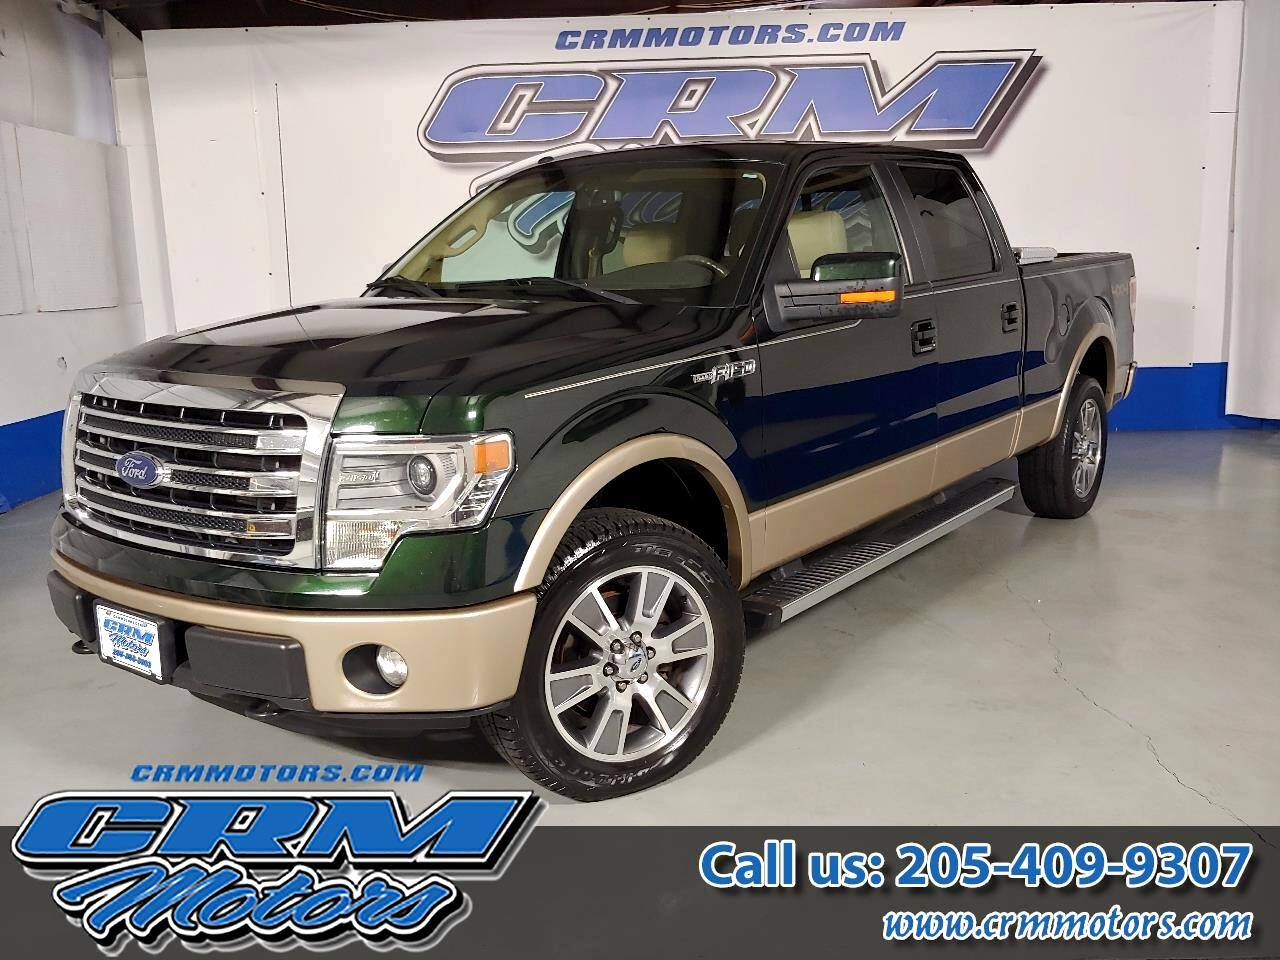 2014 Ford F-150 LARIAT, SUPERCREW, 4X4, BRAND NEW INSIDE/OUT!